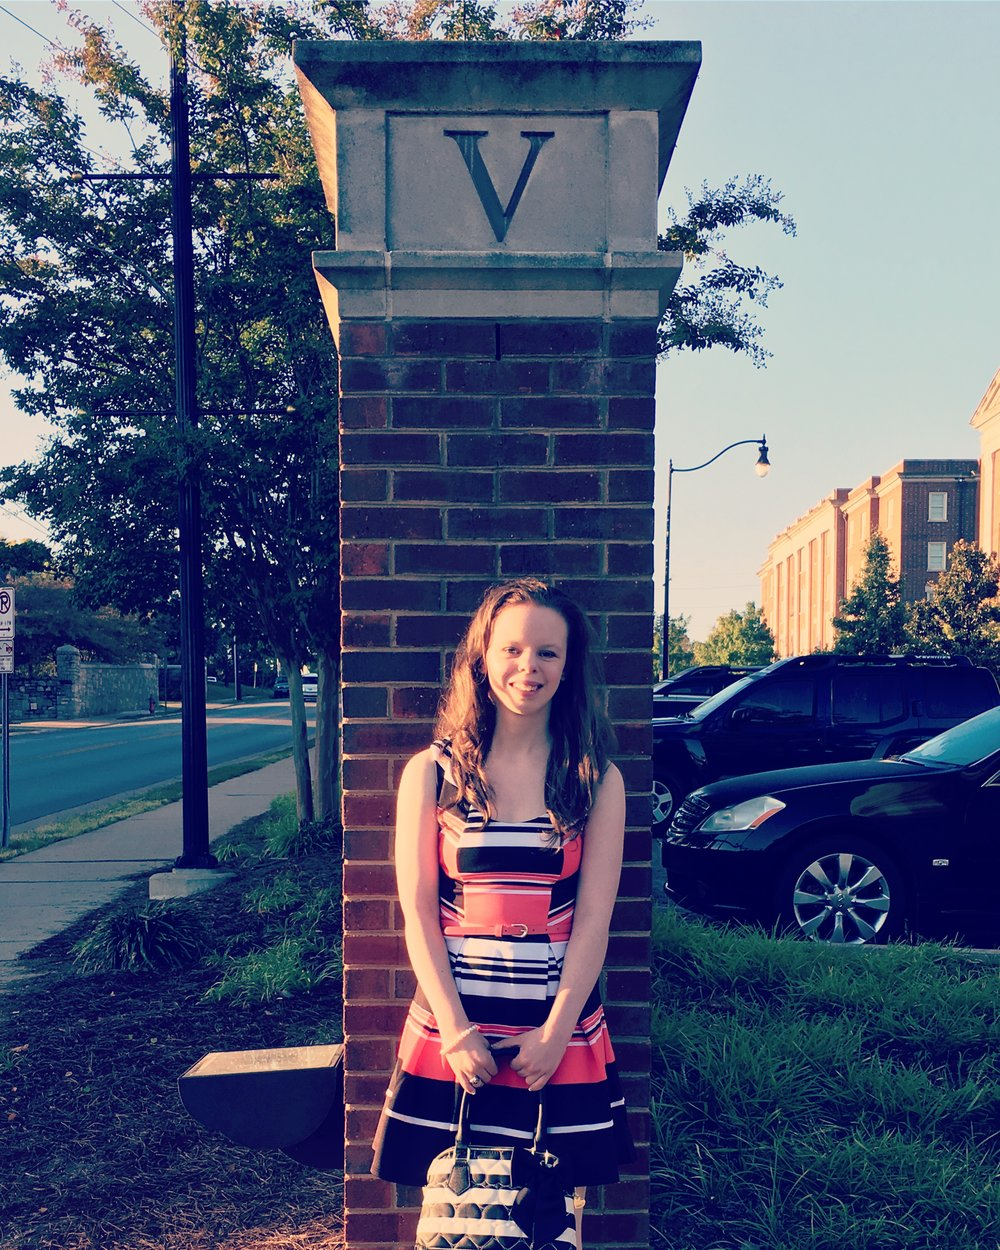 So grown up! Good luck Chloe!!!